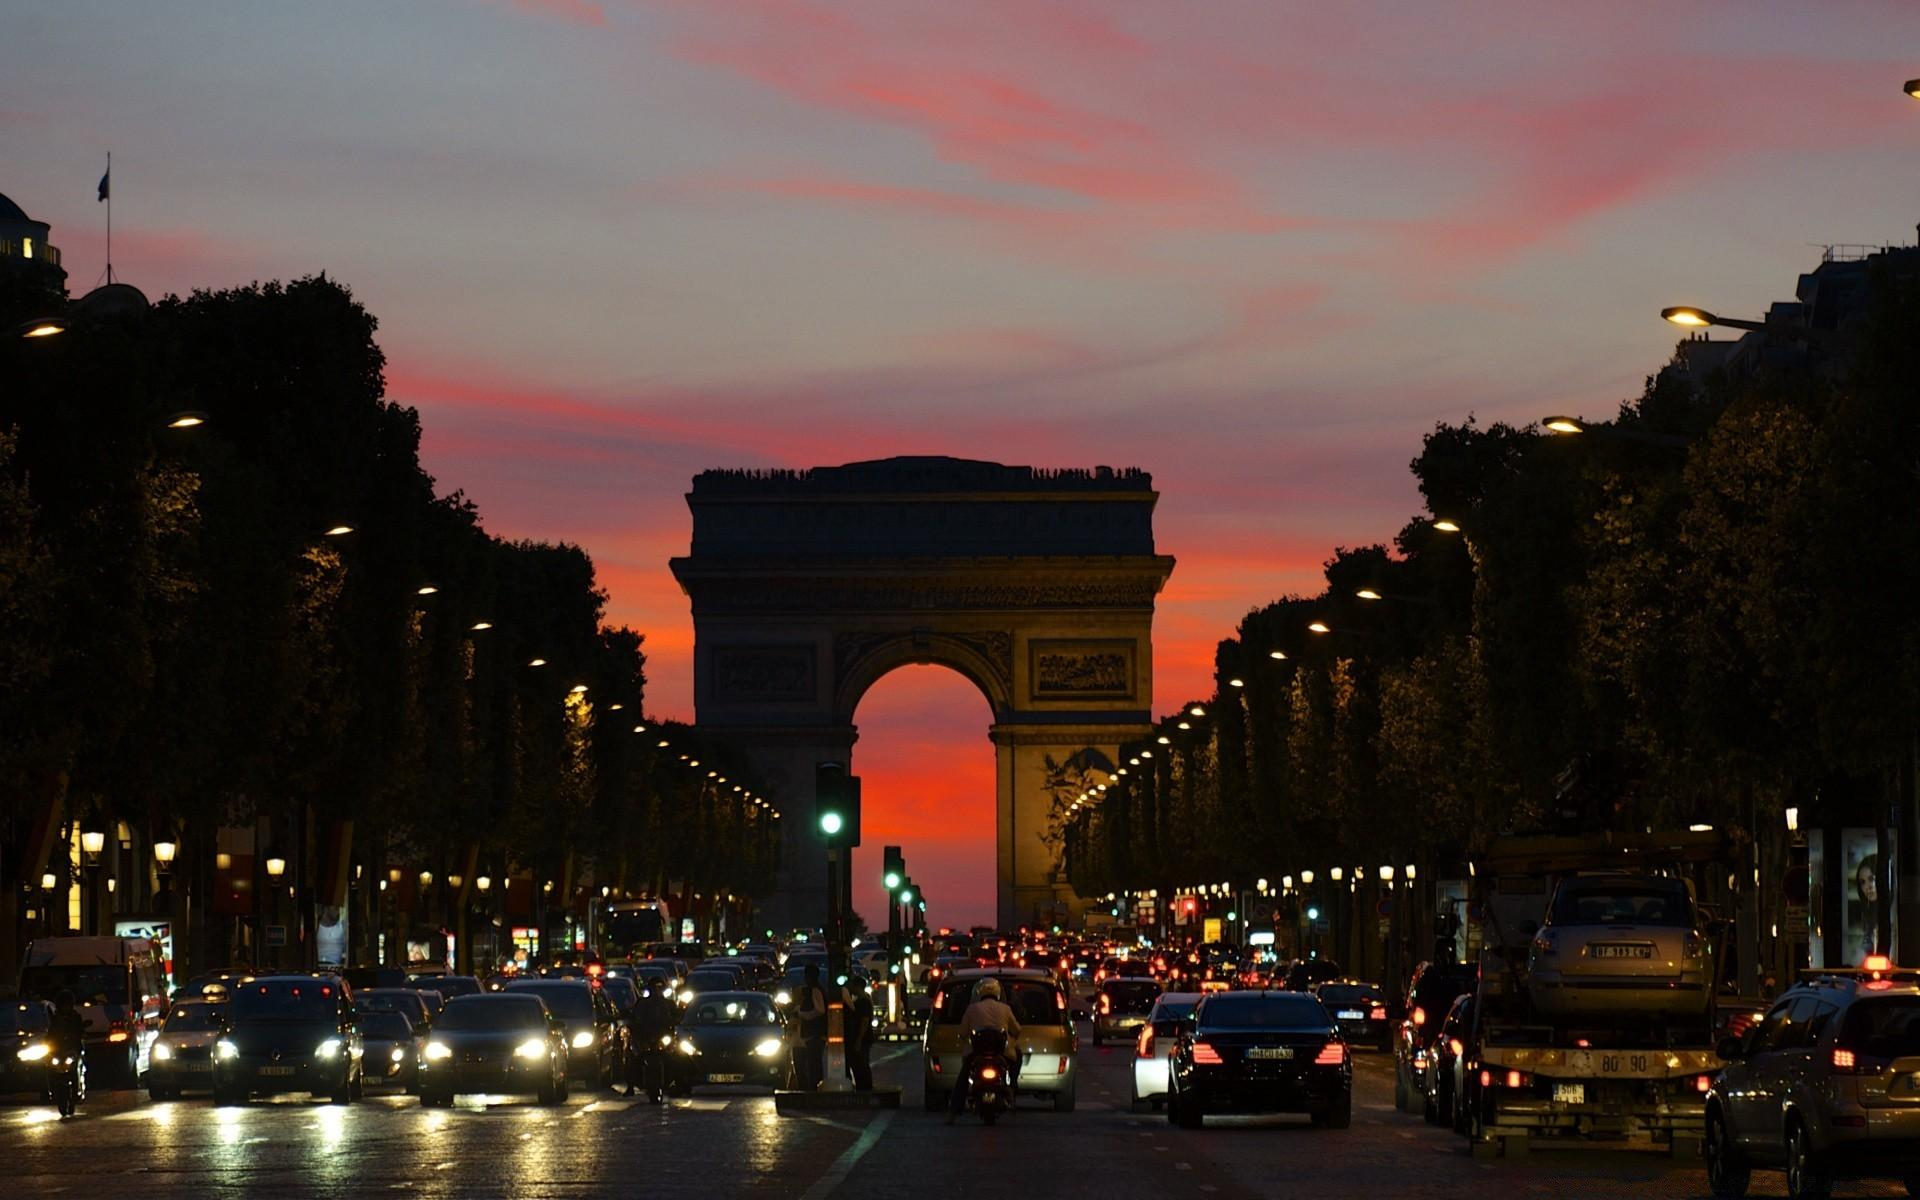 Arc De Triomphe Boulevard. Desktop wallpapers for free